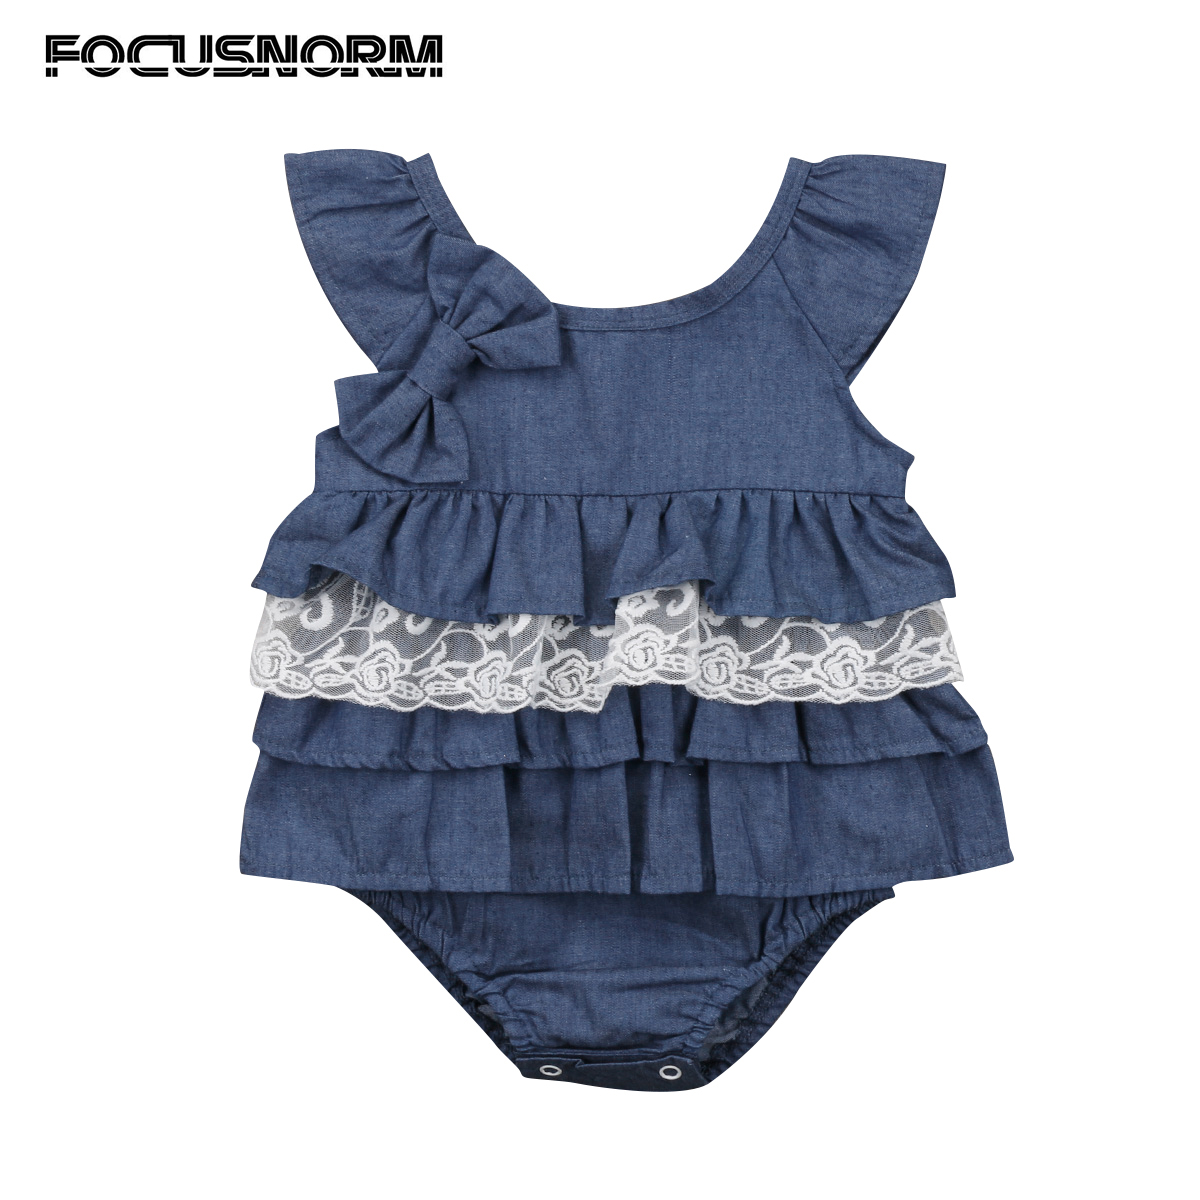 Christmas Newborn Infant Baby Girls Xmas Clothes Denim Bow Flying Sleeves Lace Layered Bodysuit Jumpsuit Outfits